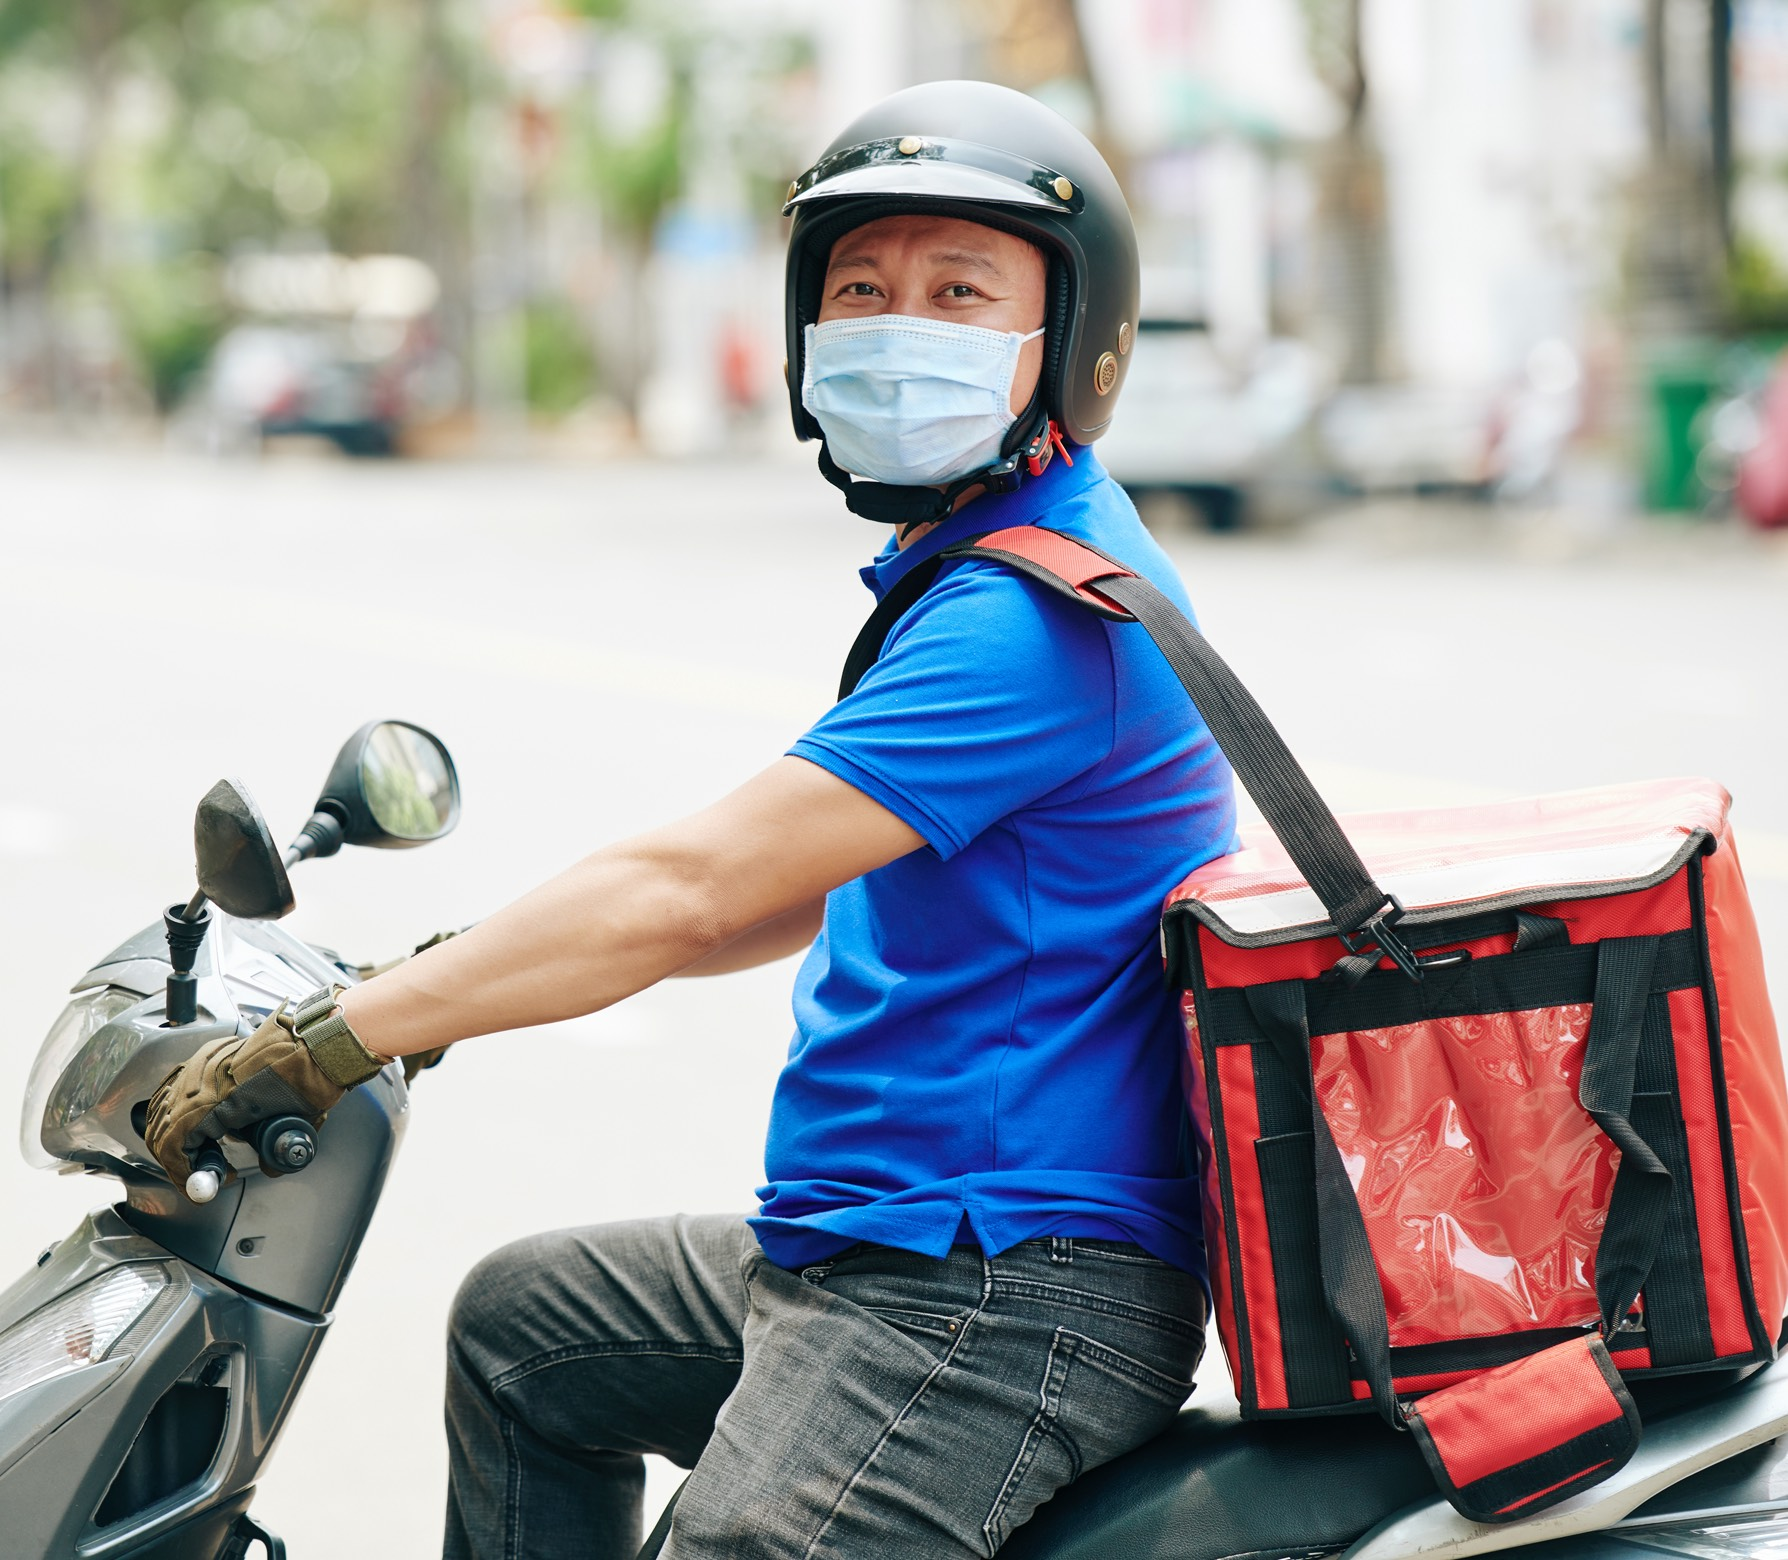 Image of a male delivery driver on a moped smiling at the camera whilst wearing facial PPE and a food delivery backpack on his back